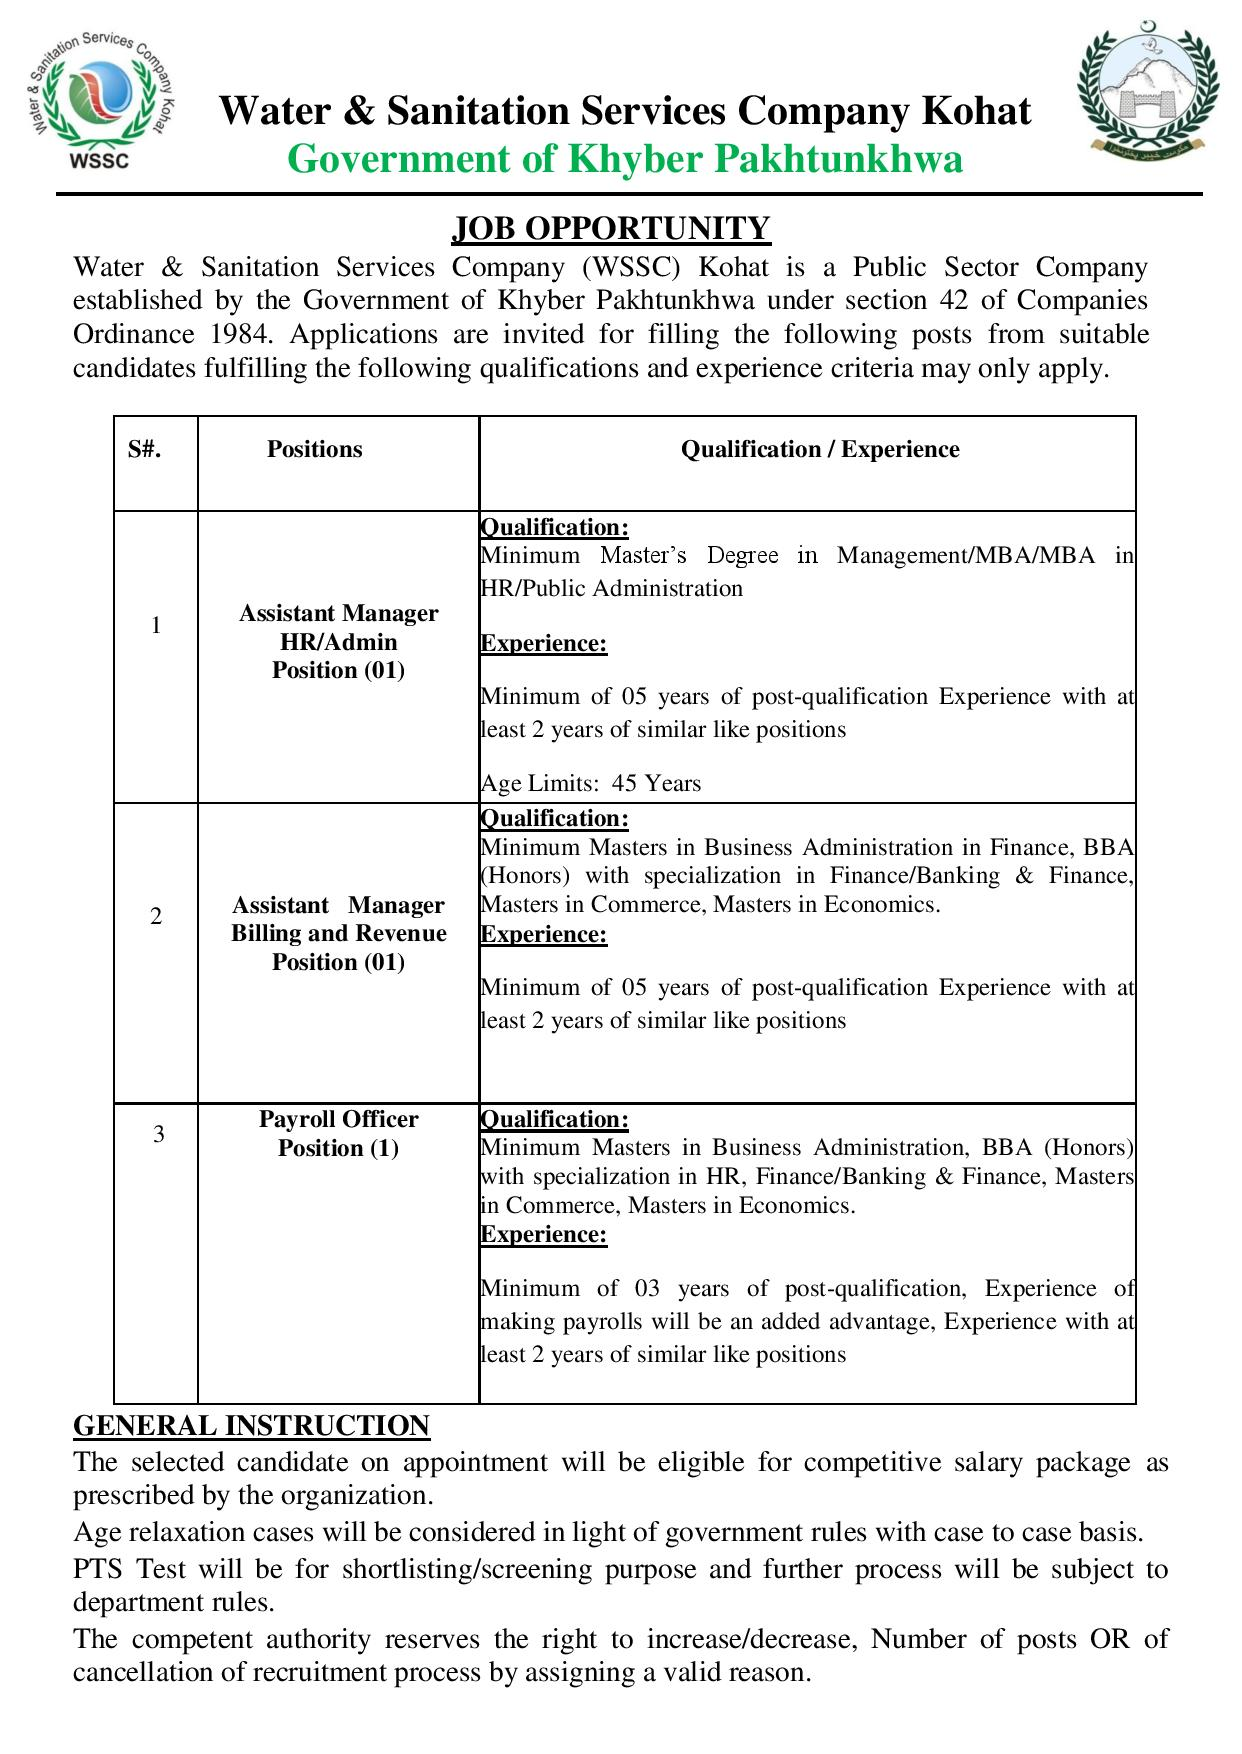 Water Sanitation Services Company WSSC Kohat Jobs PTS Test Result